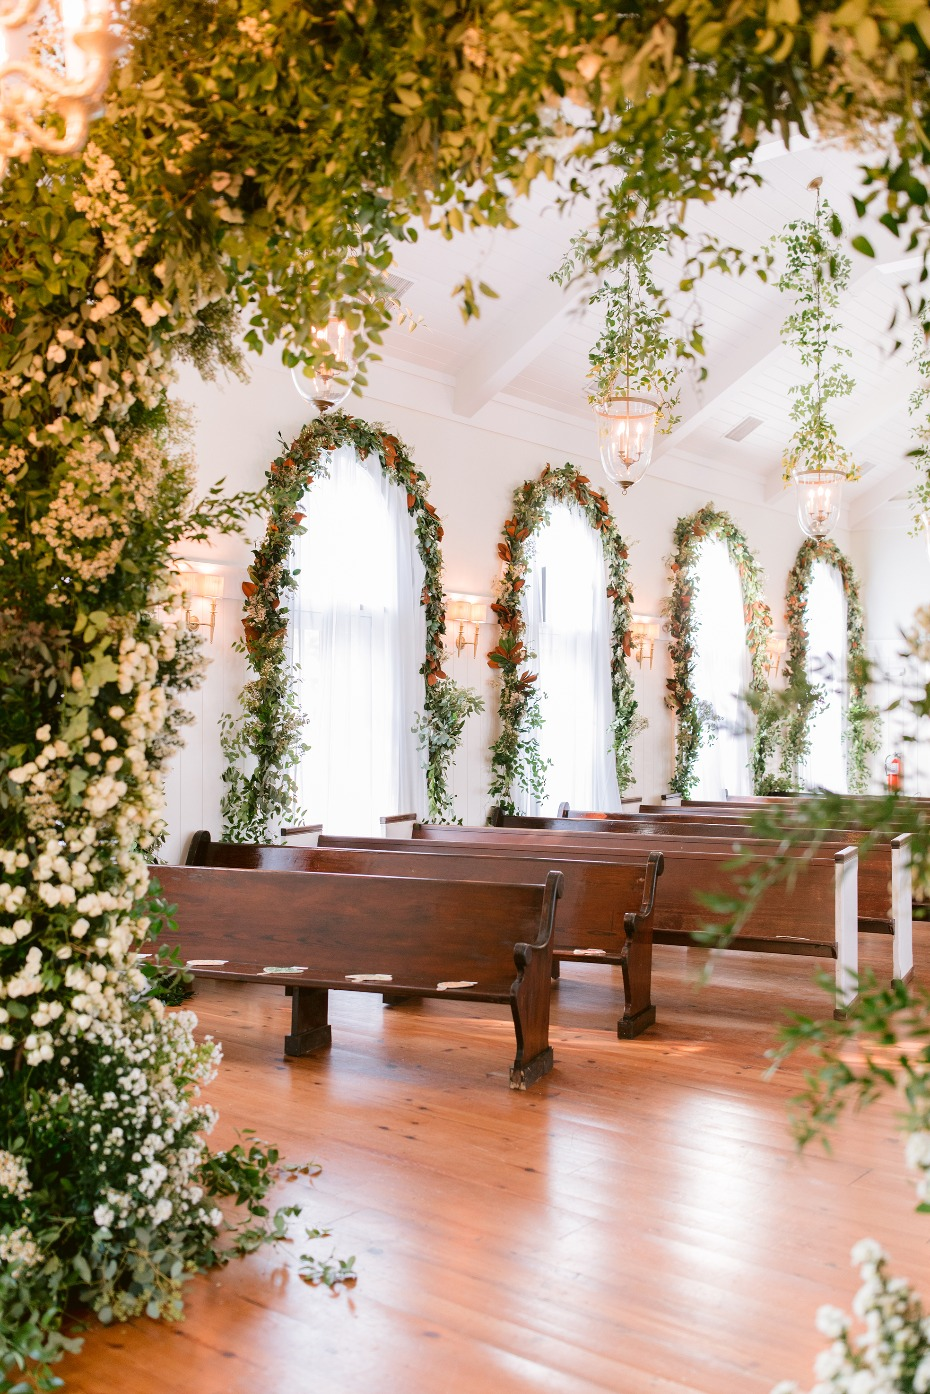 How to Virtually Plan a Wedding from Home